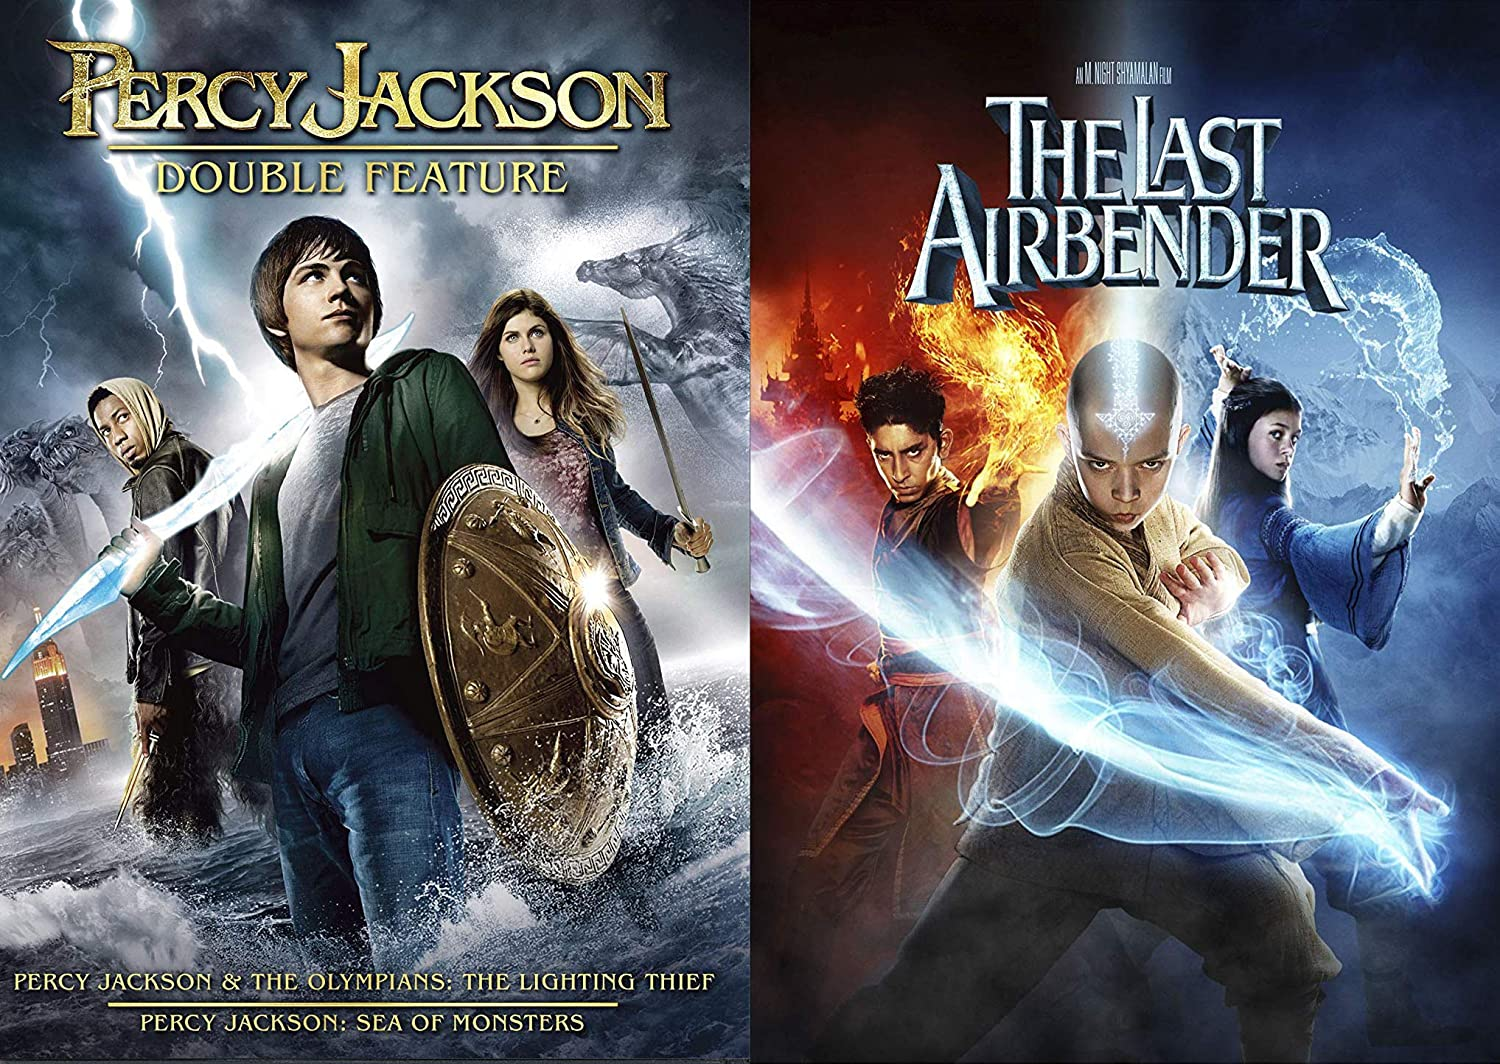 Adventure Comes In Waves- Young Adult Fantasy Super Pack 3-Movie Bundle - Percy Jackson & The Olympians: The Lightning Thief and Sea of Monsters & The Last Airbender 3-DVD Set: Amazon.es: Cine